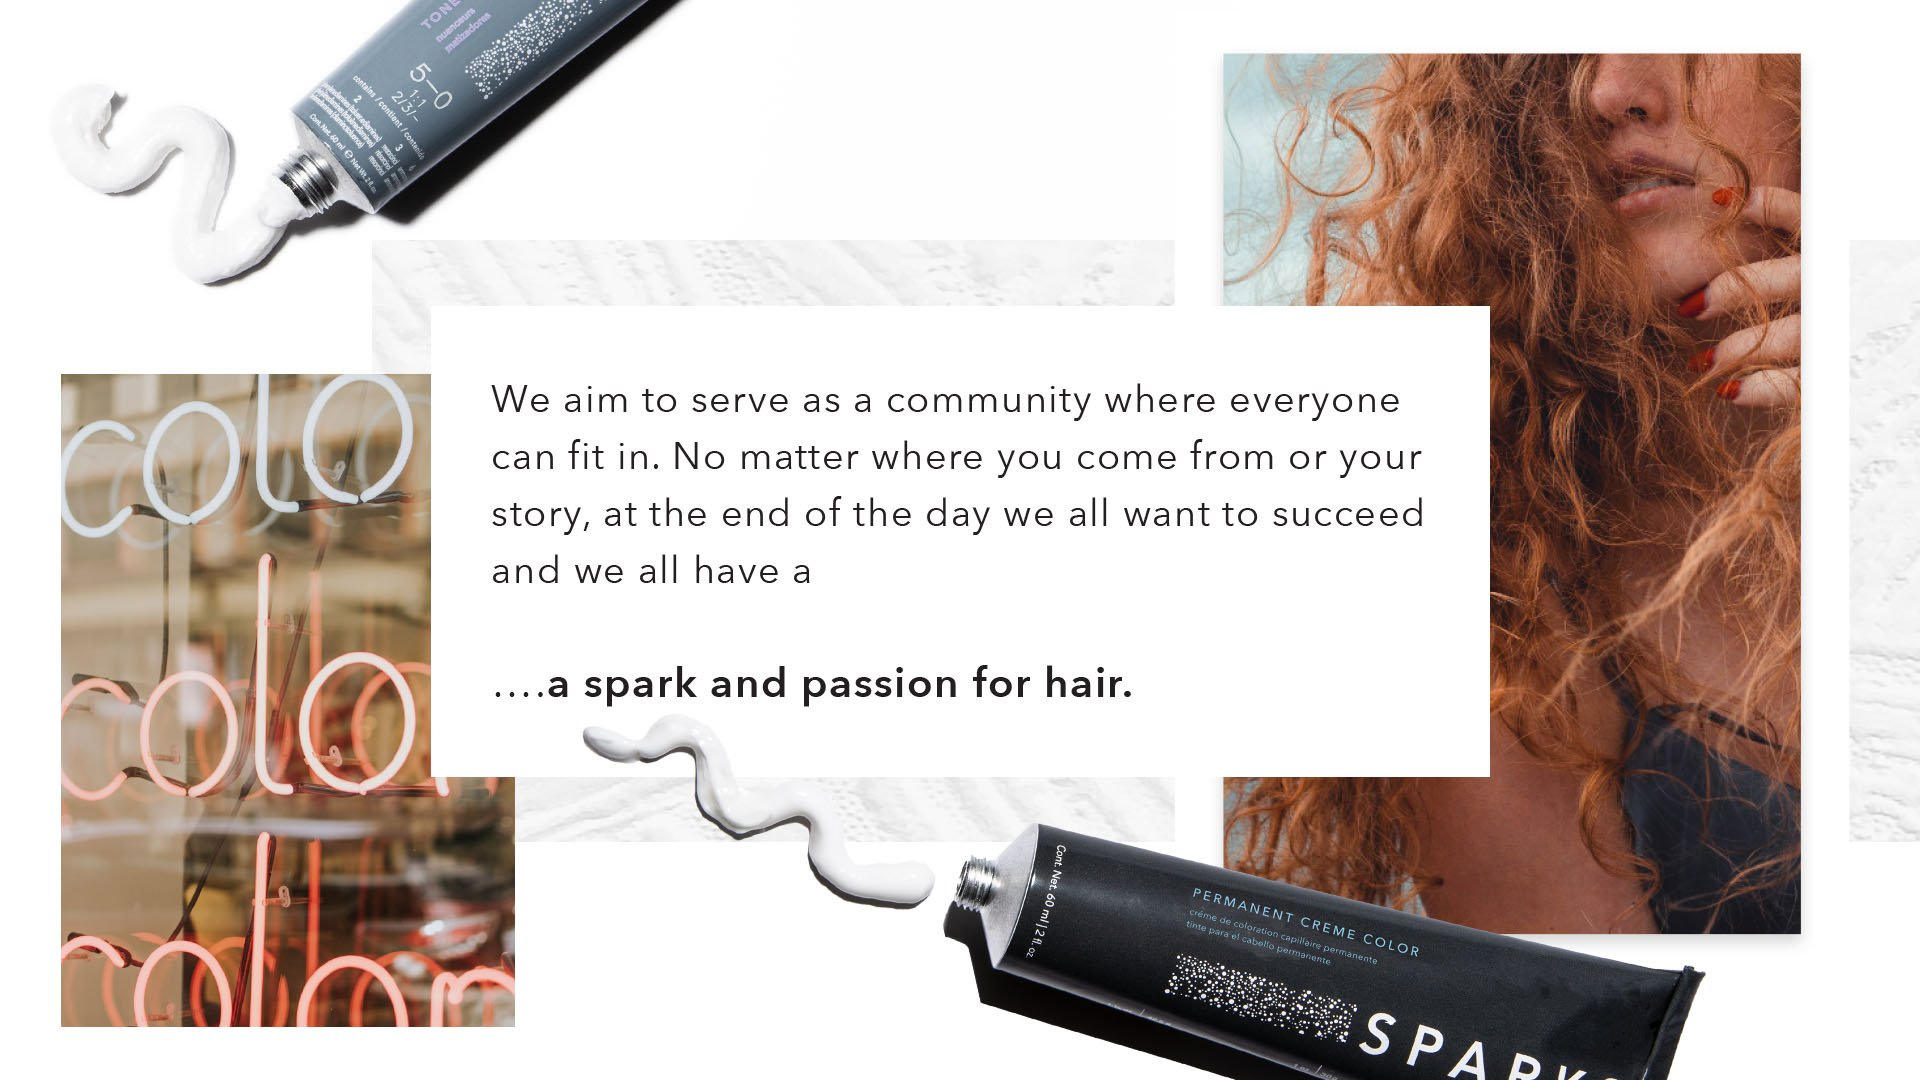 Quote reads, we aim to serve as a community where everyone can fit it. No matter where you come from or your story, at the end of the day we all want to succeed and we all have a ... a spark and passion for hair. With products, textures and model imagery.